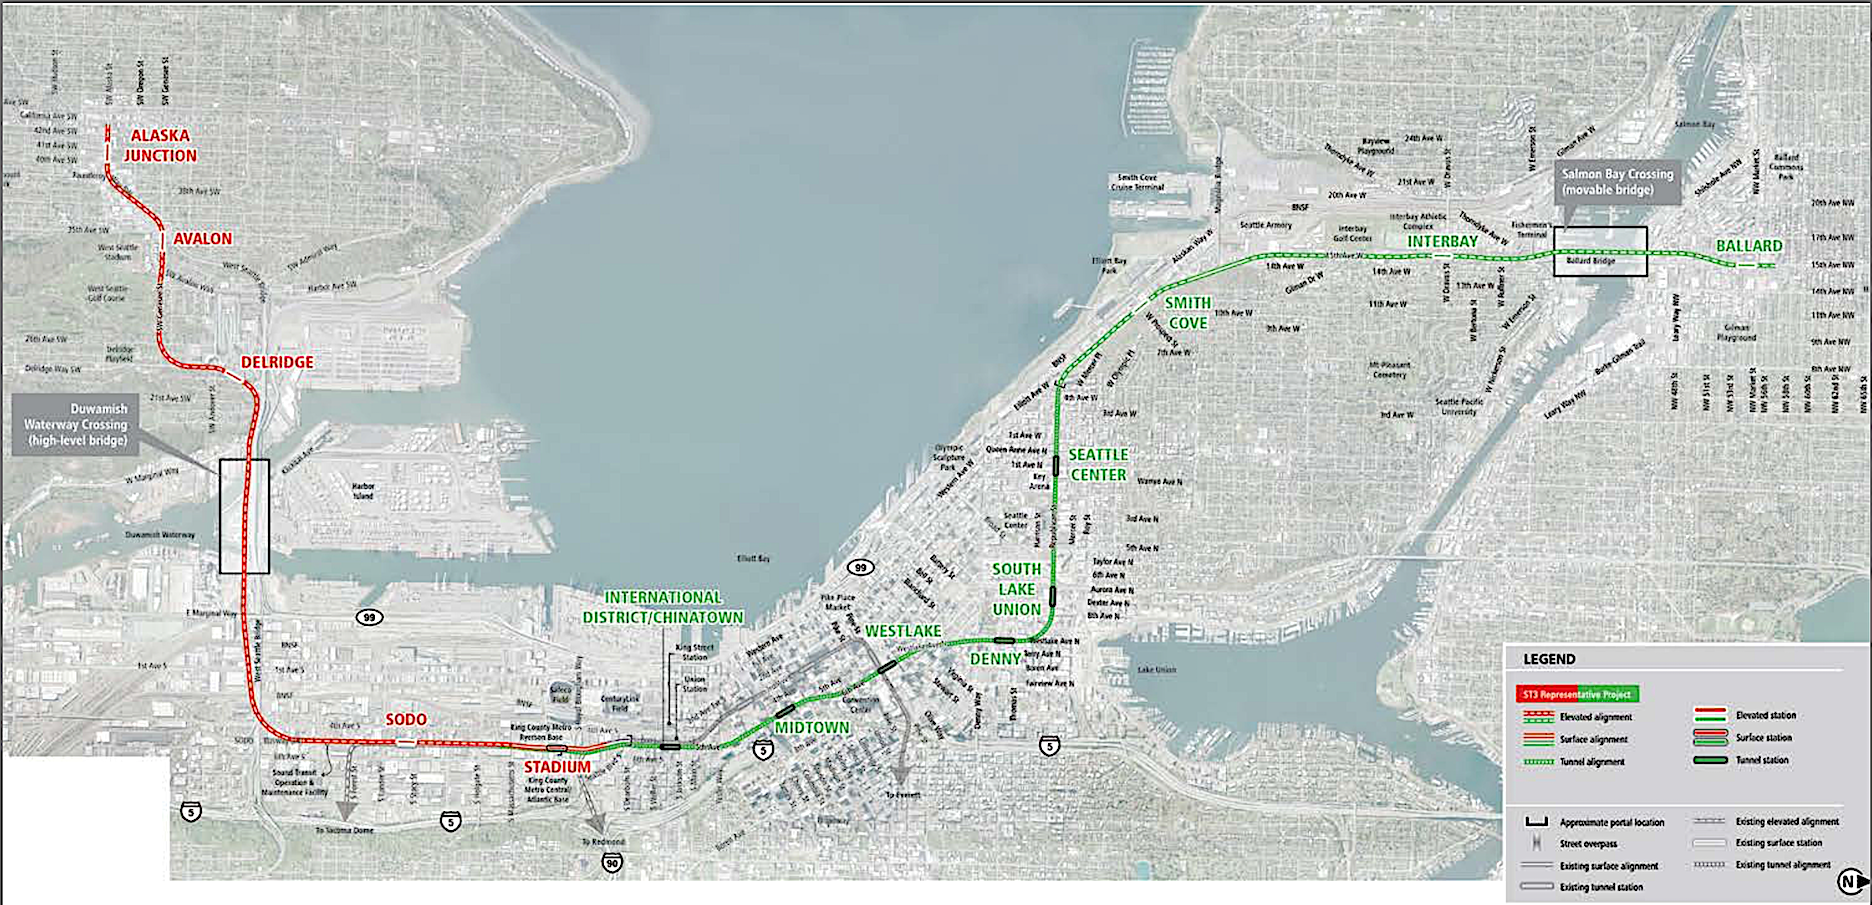 Sound Transit discussion on light rail extensions to West Seattle